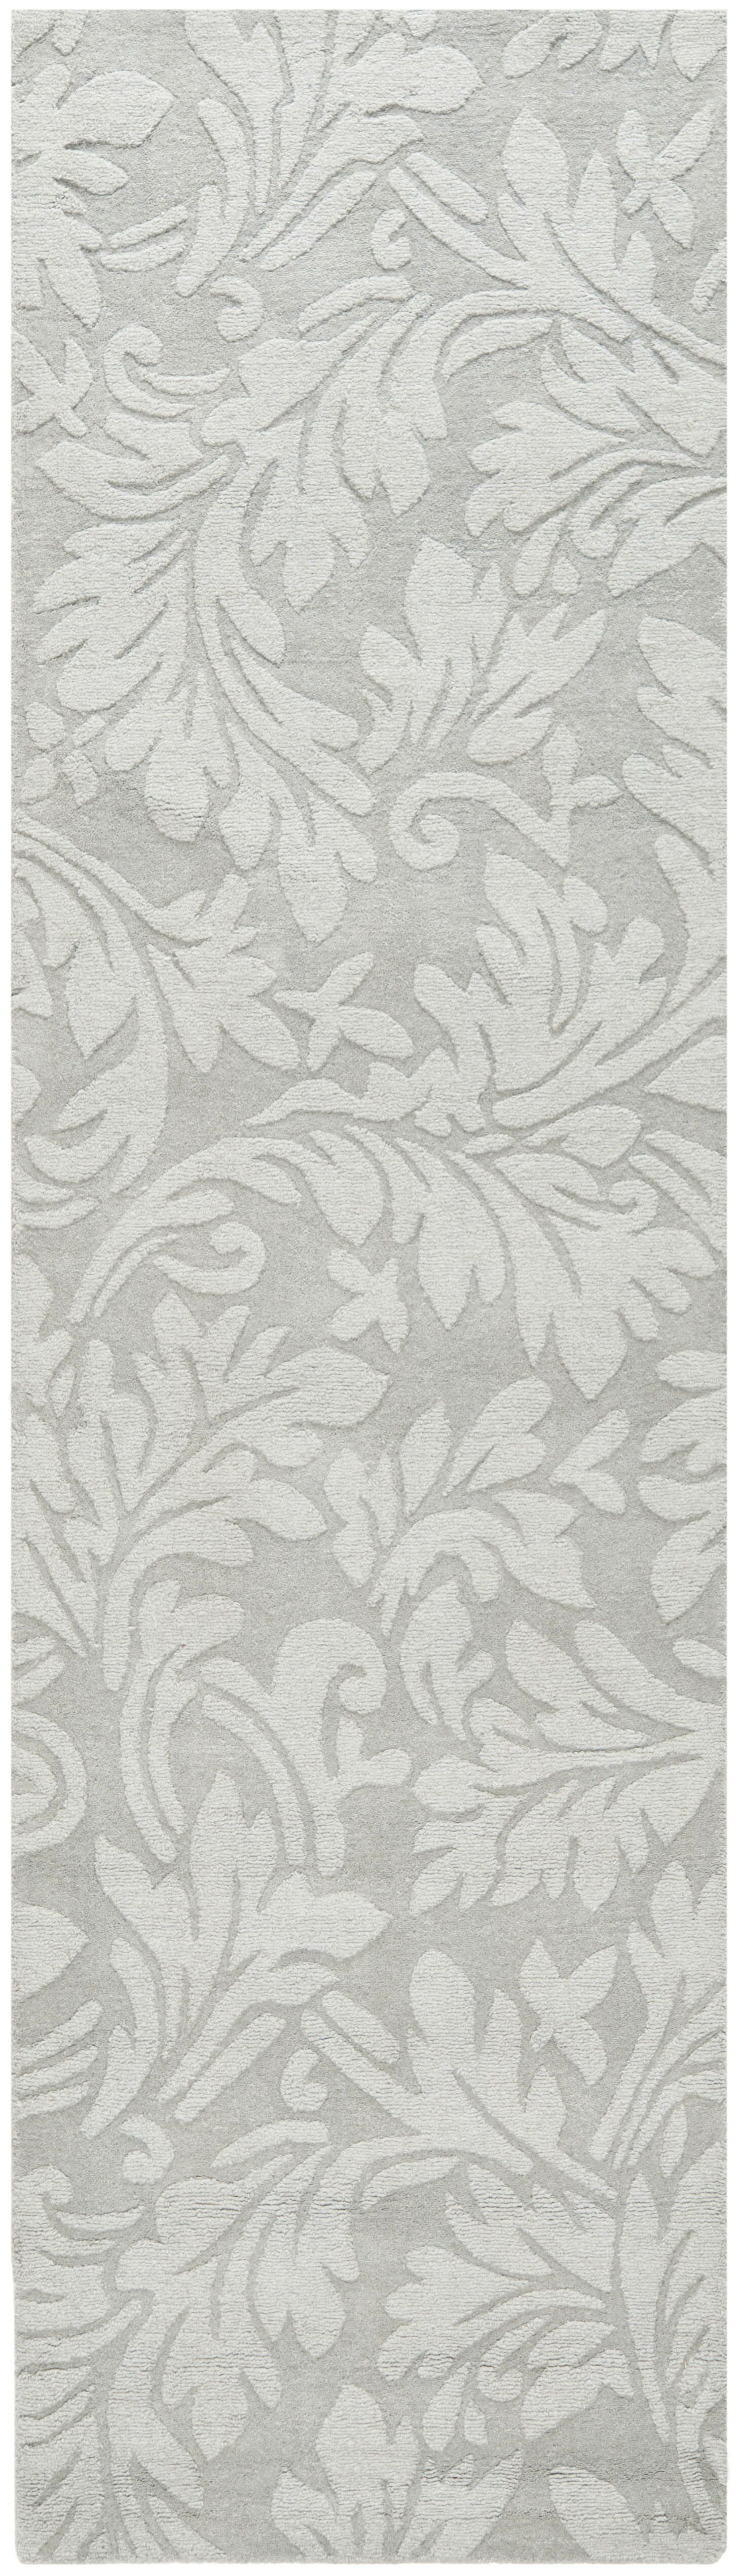 Sarah Modern Grey Area Rug Rug Size: Rectangle 4' x 6'